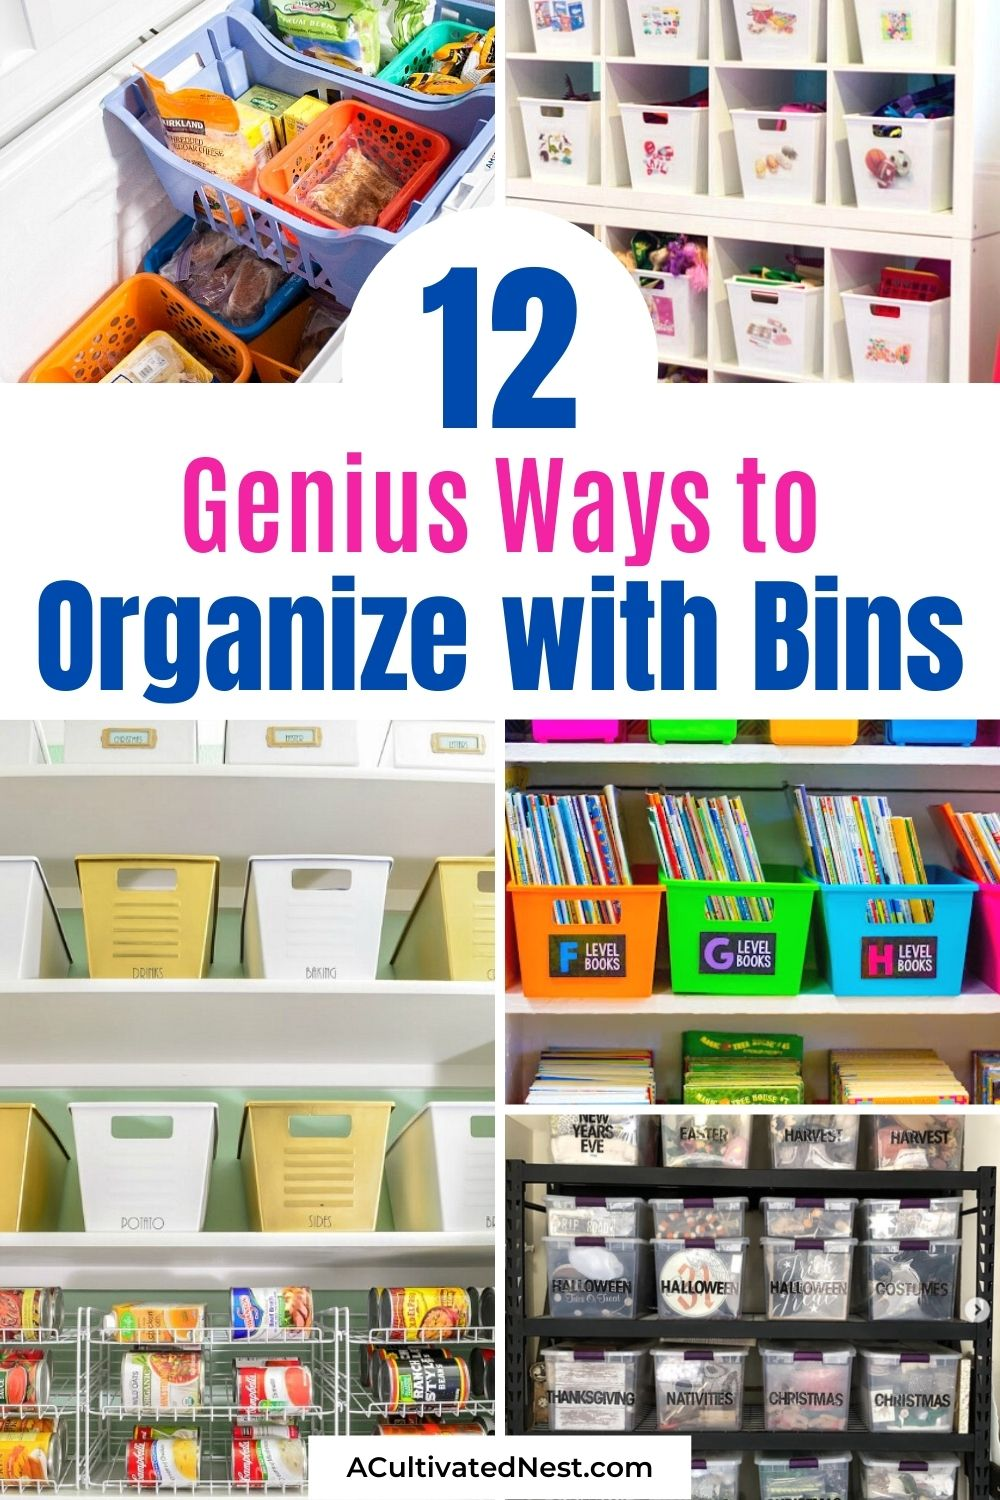 12 Clever Ways to Organize Your Home with Bins- If you want to make your home neat and tidy on a budget, you should try bins! Here are some great examples of home organization using bins to get you inspired!   #organization #organizingTips #homeOrganizing #organize #ACultivatedNest